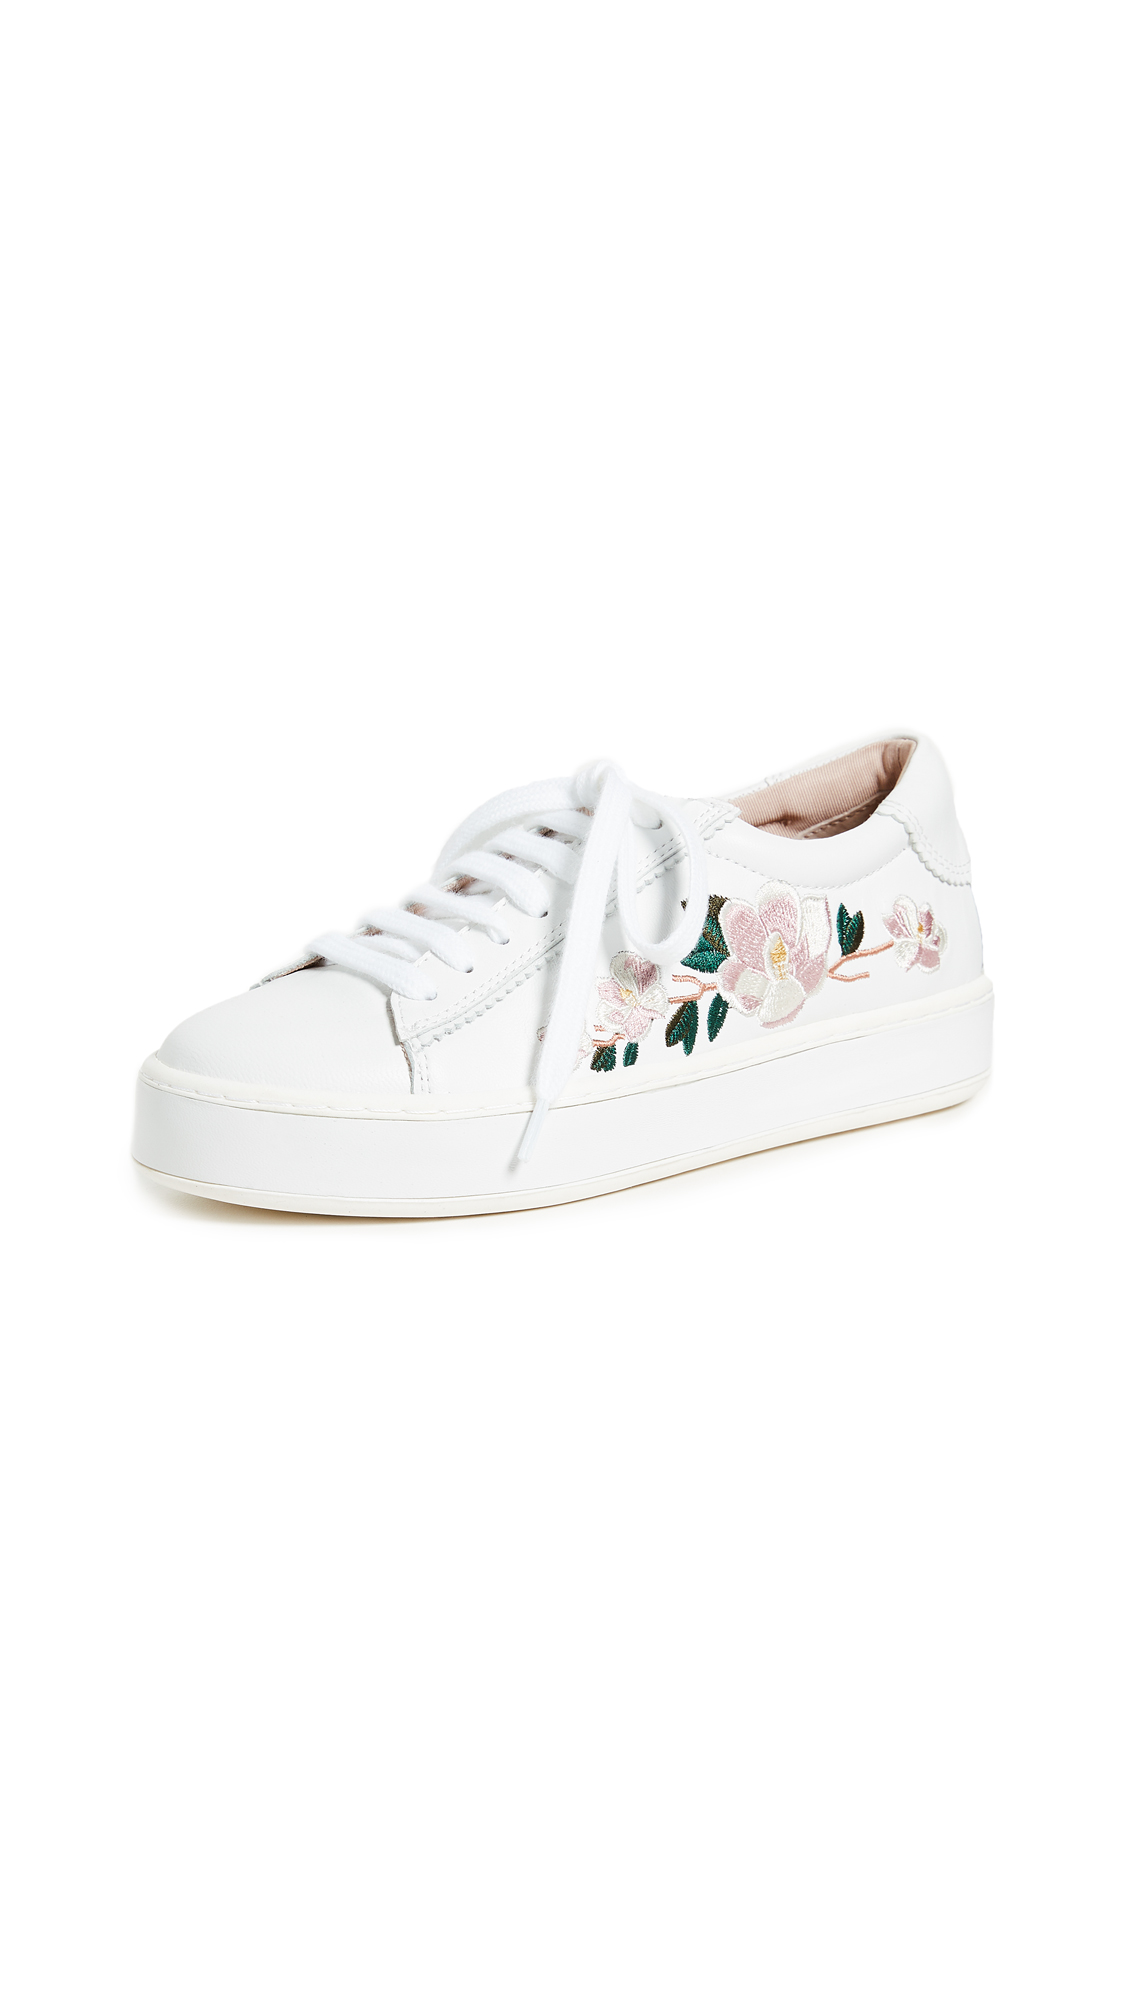 kate spade new york amber floral sneakers shoes online